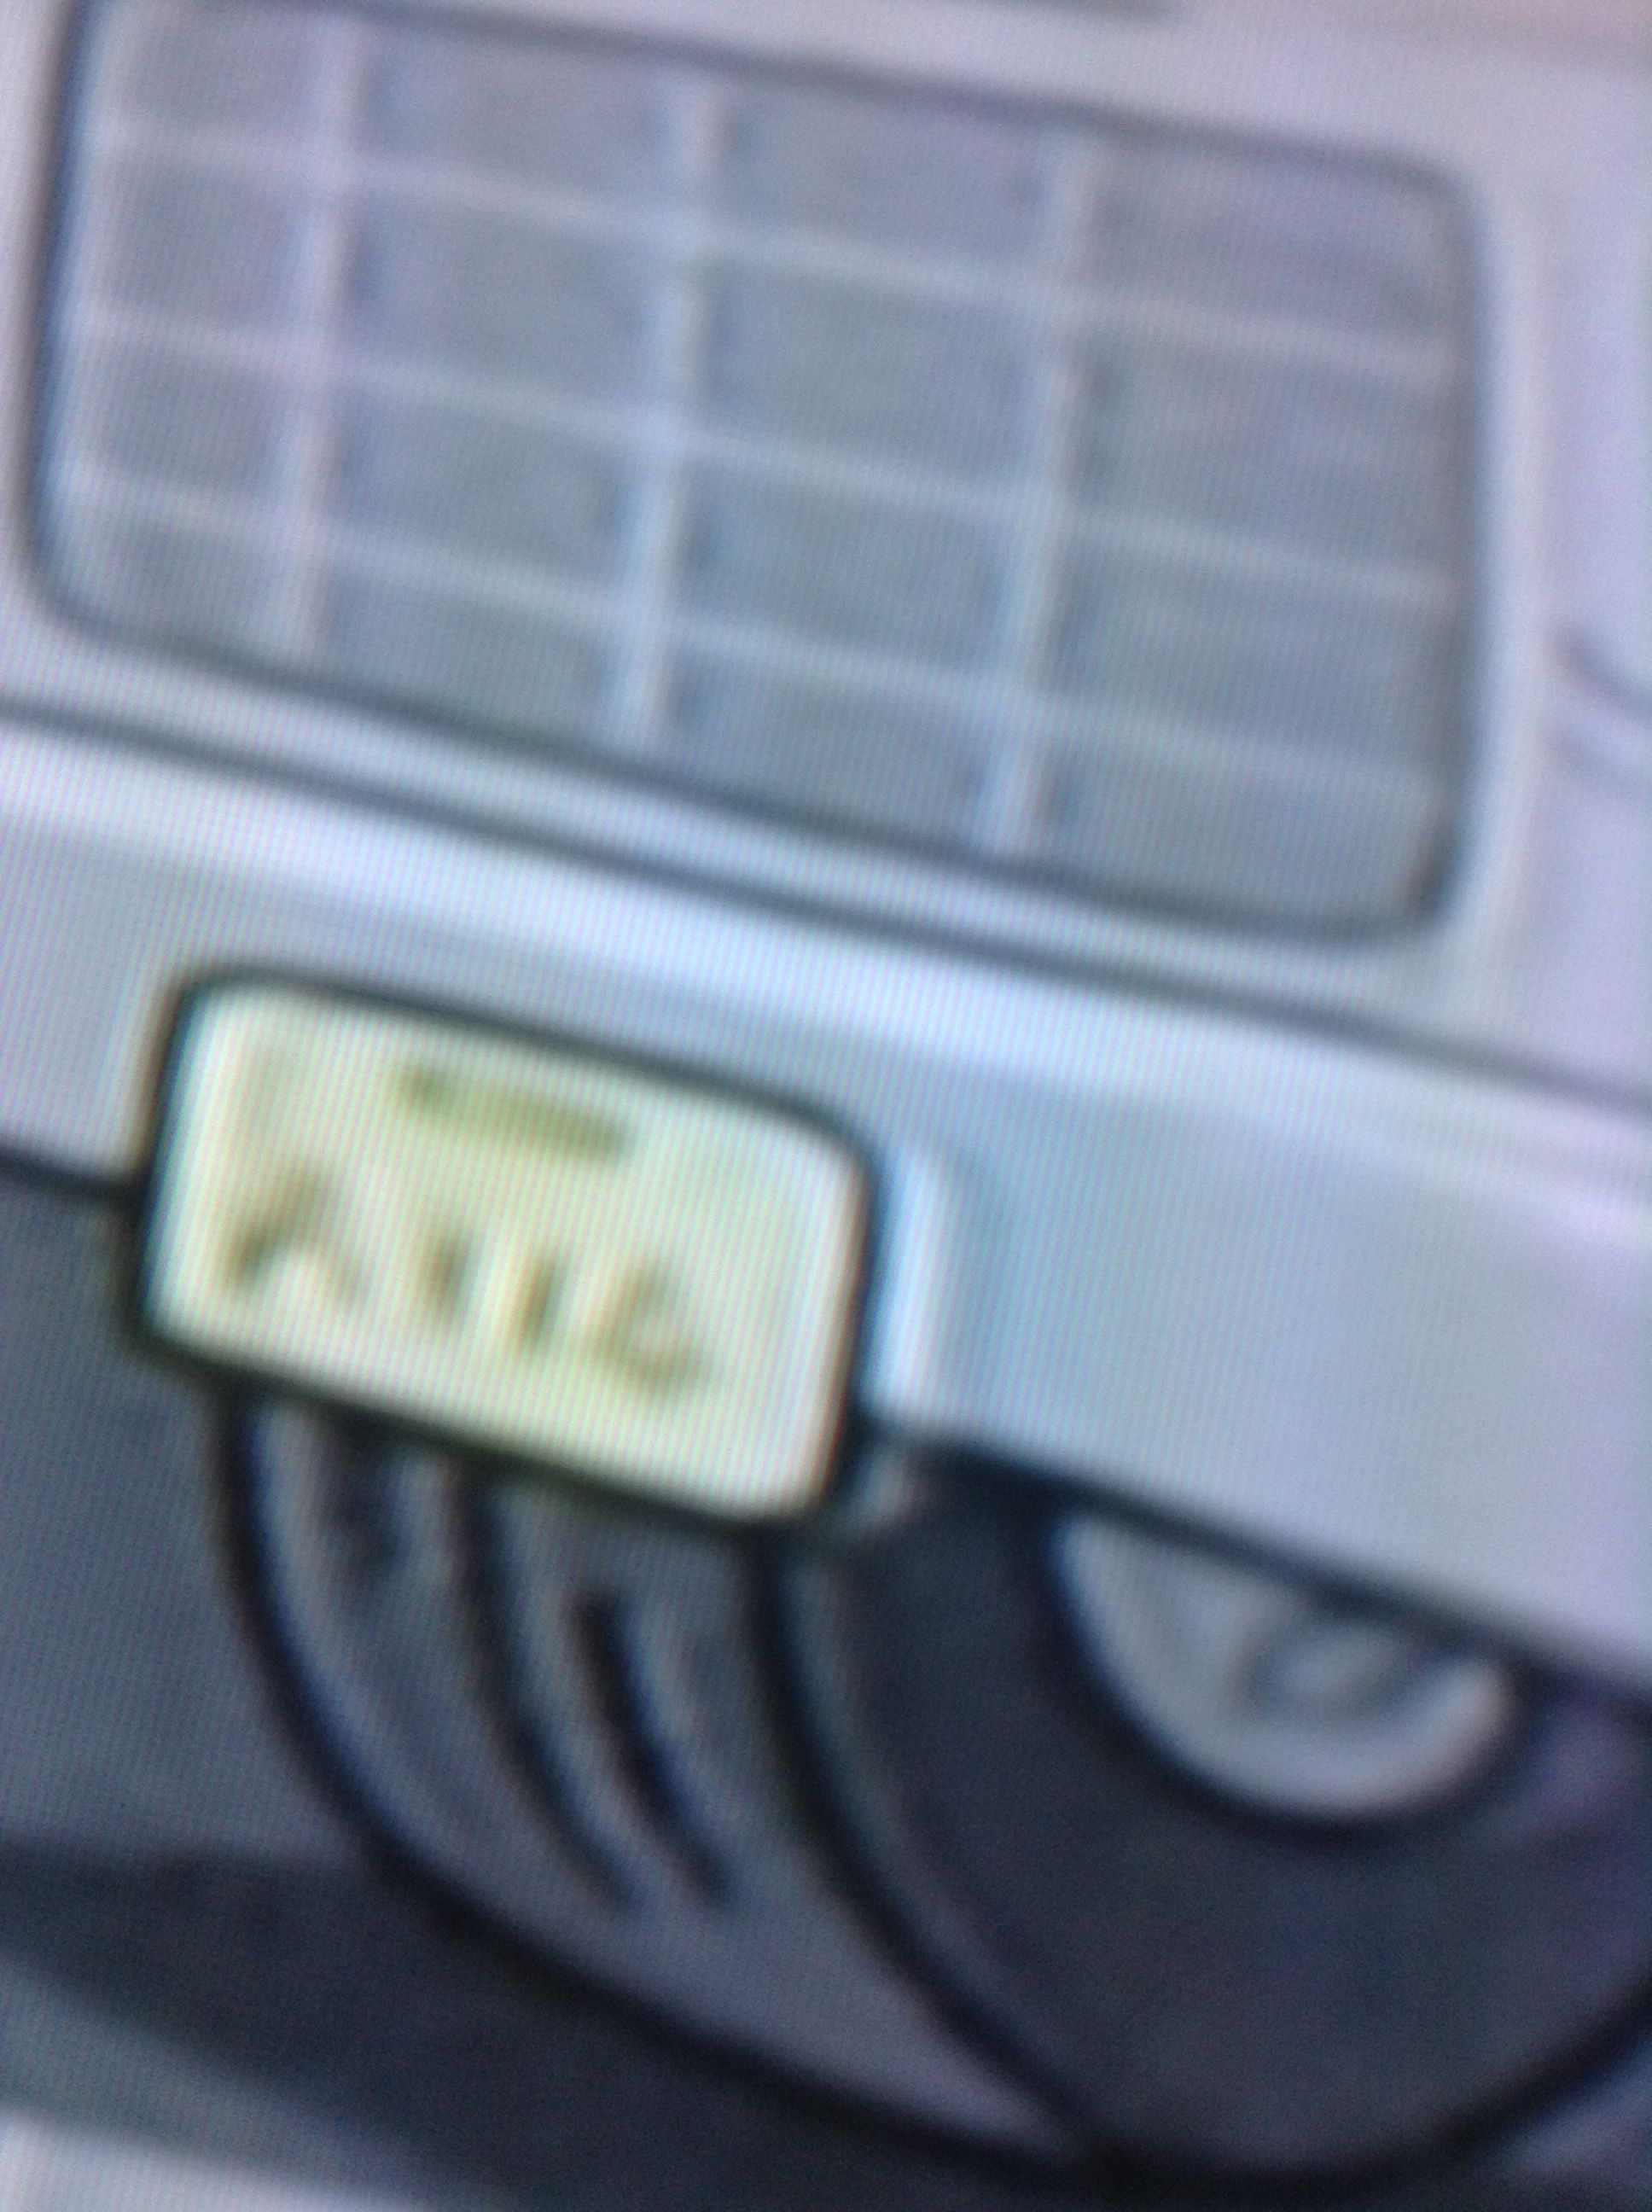 It S Blurry But Their Truck License Plate Is A114 As Well As A